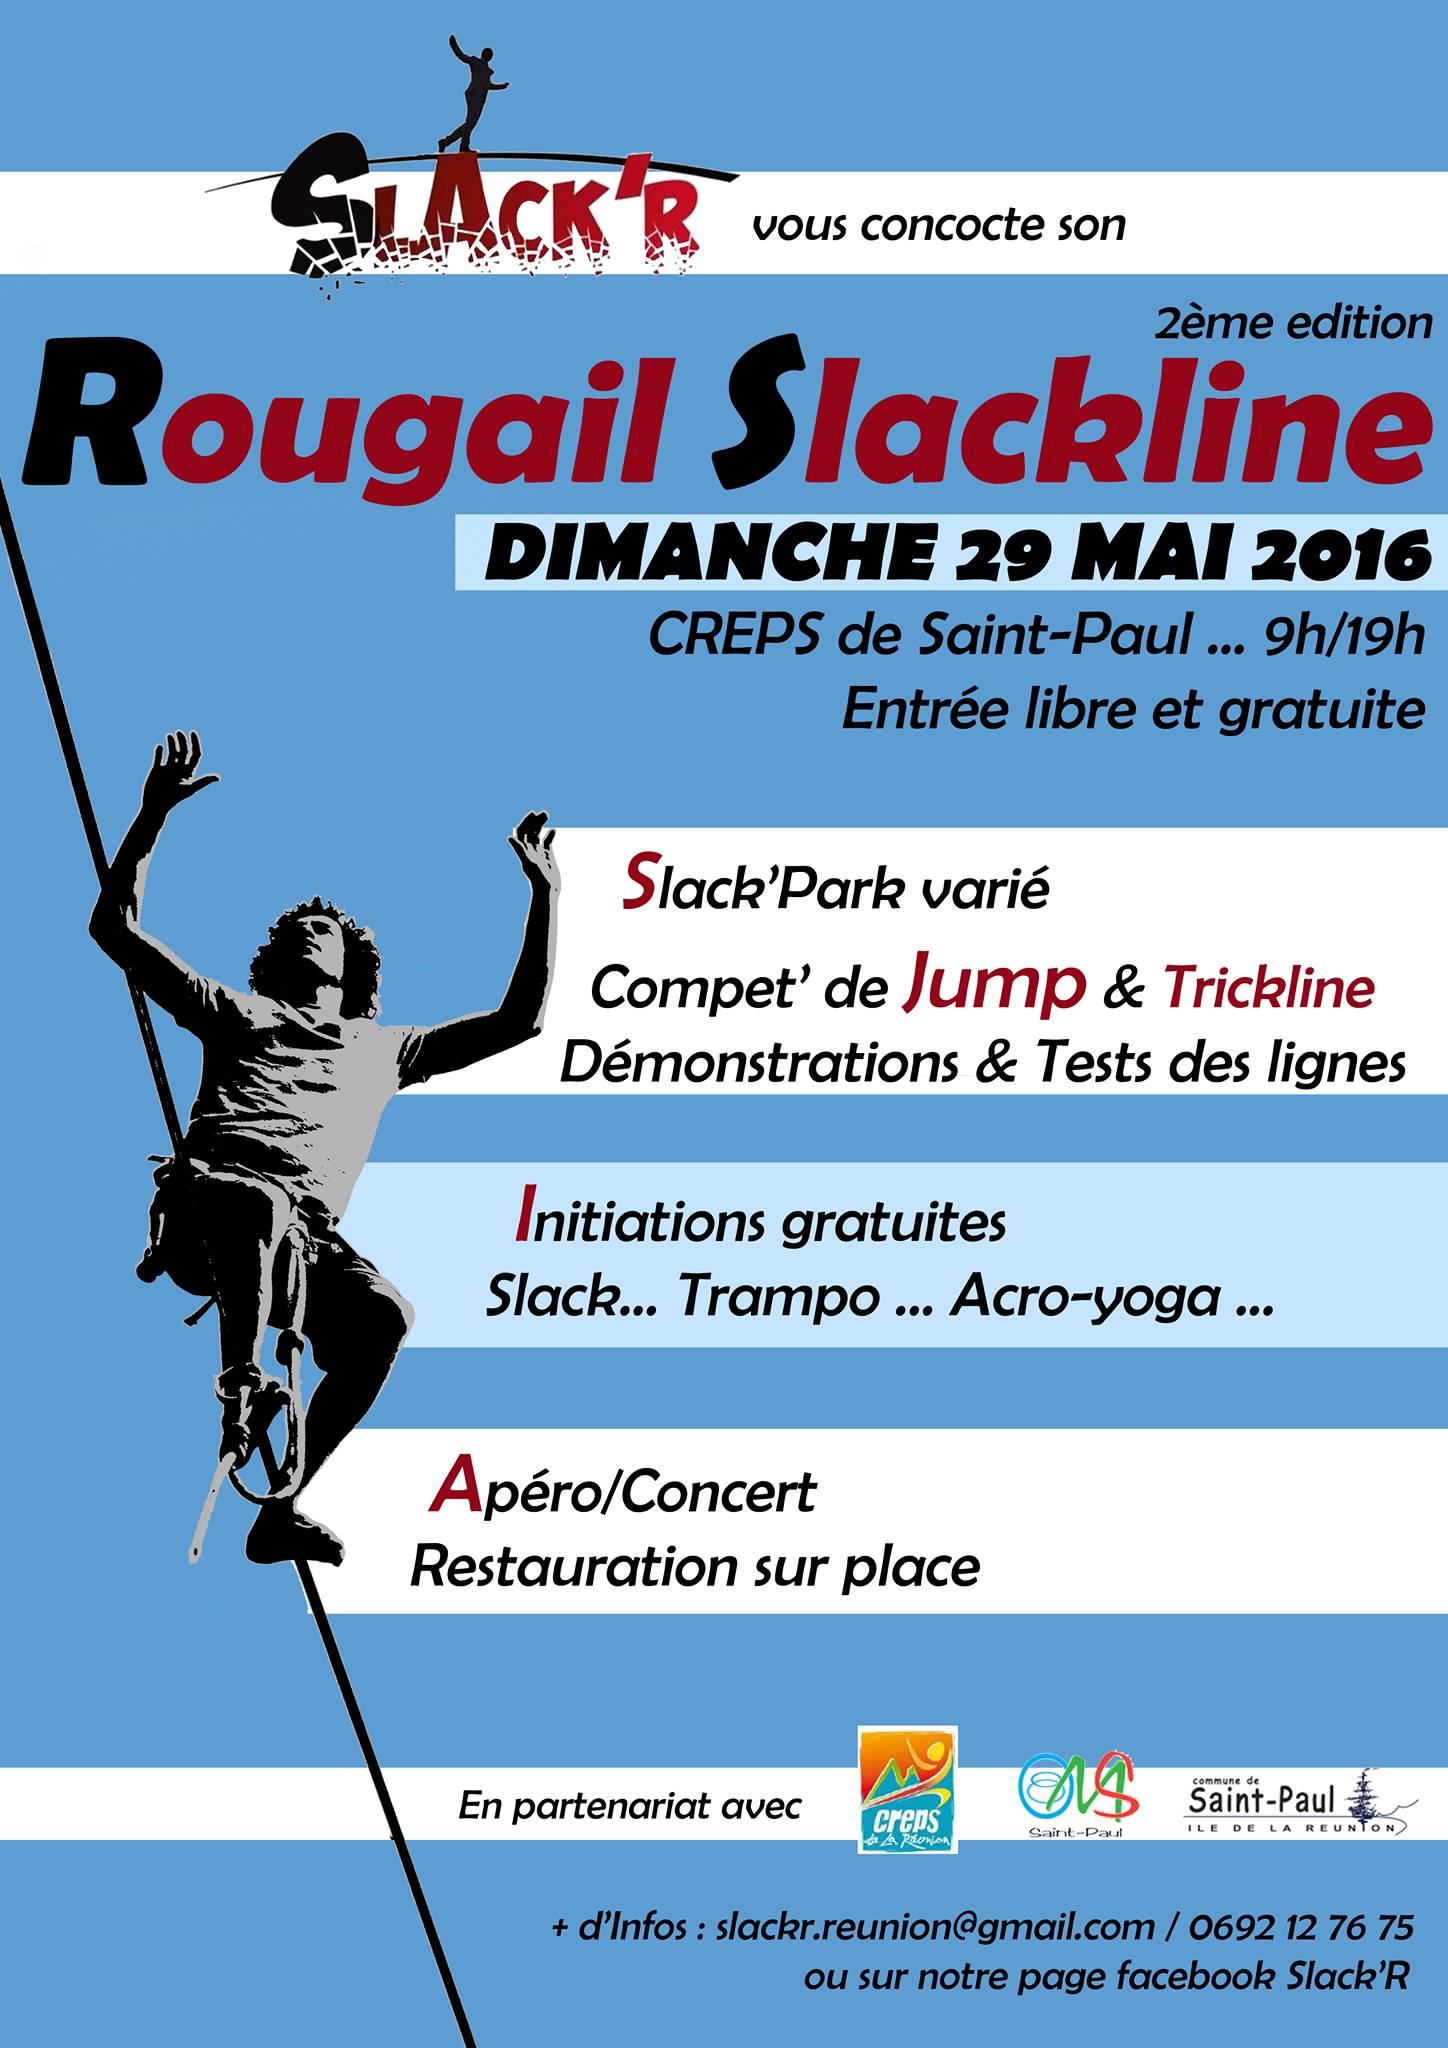 Seconde édition du Rougail Slackline